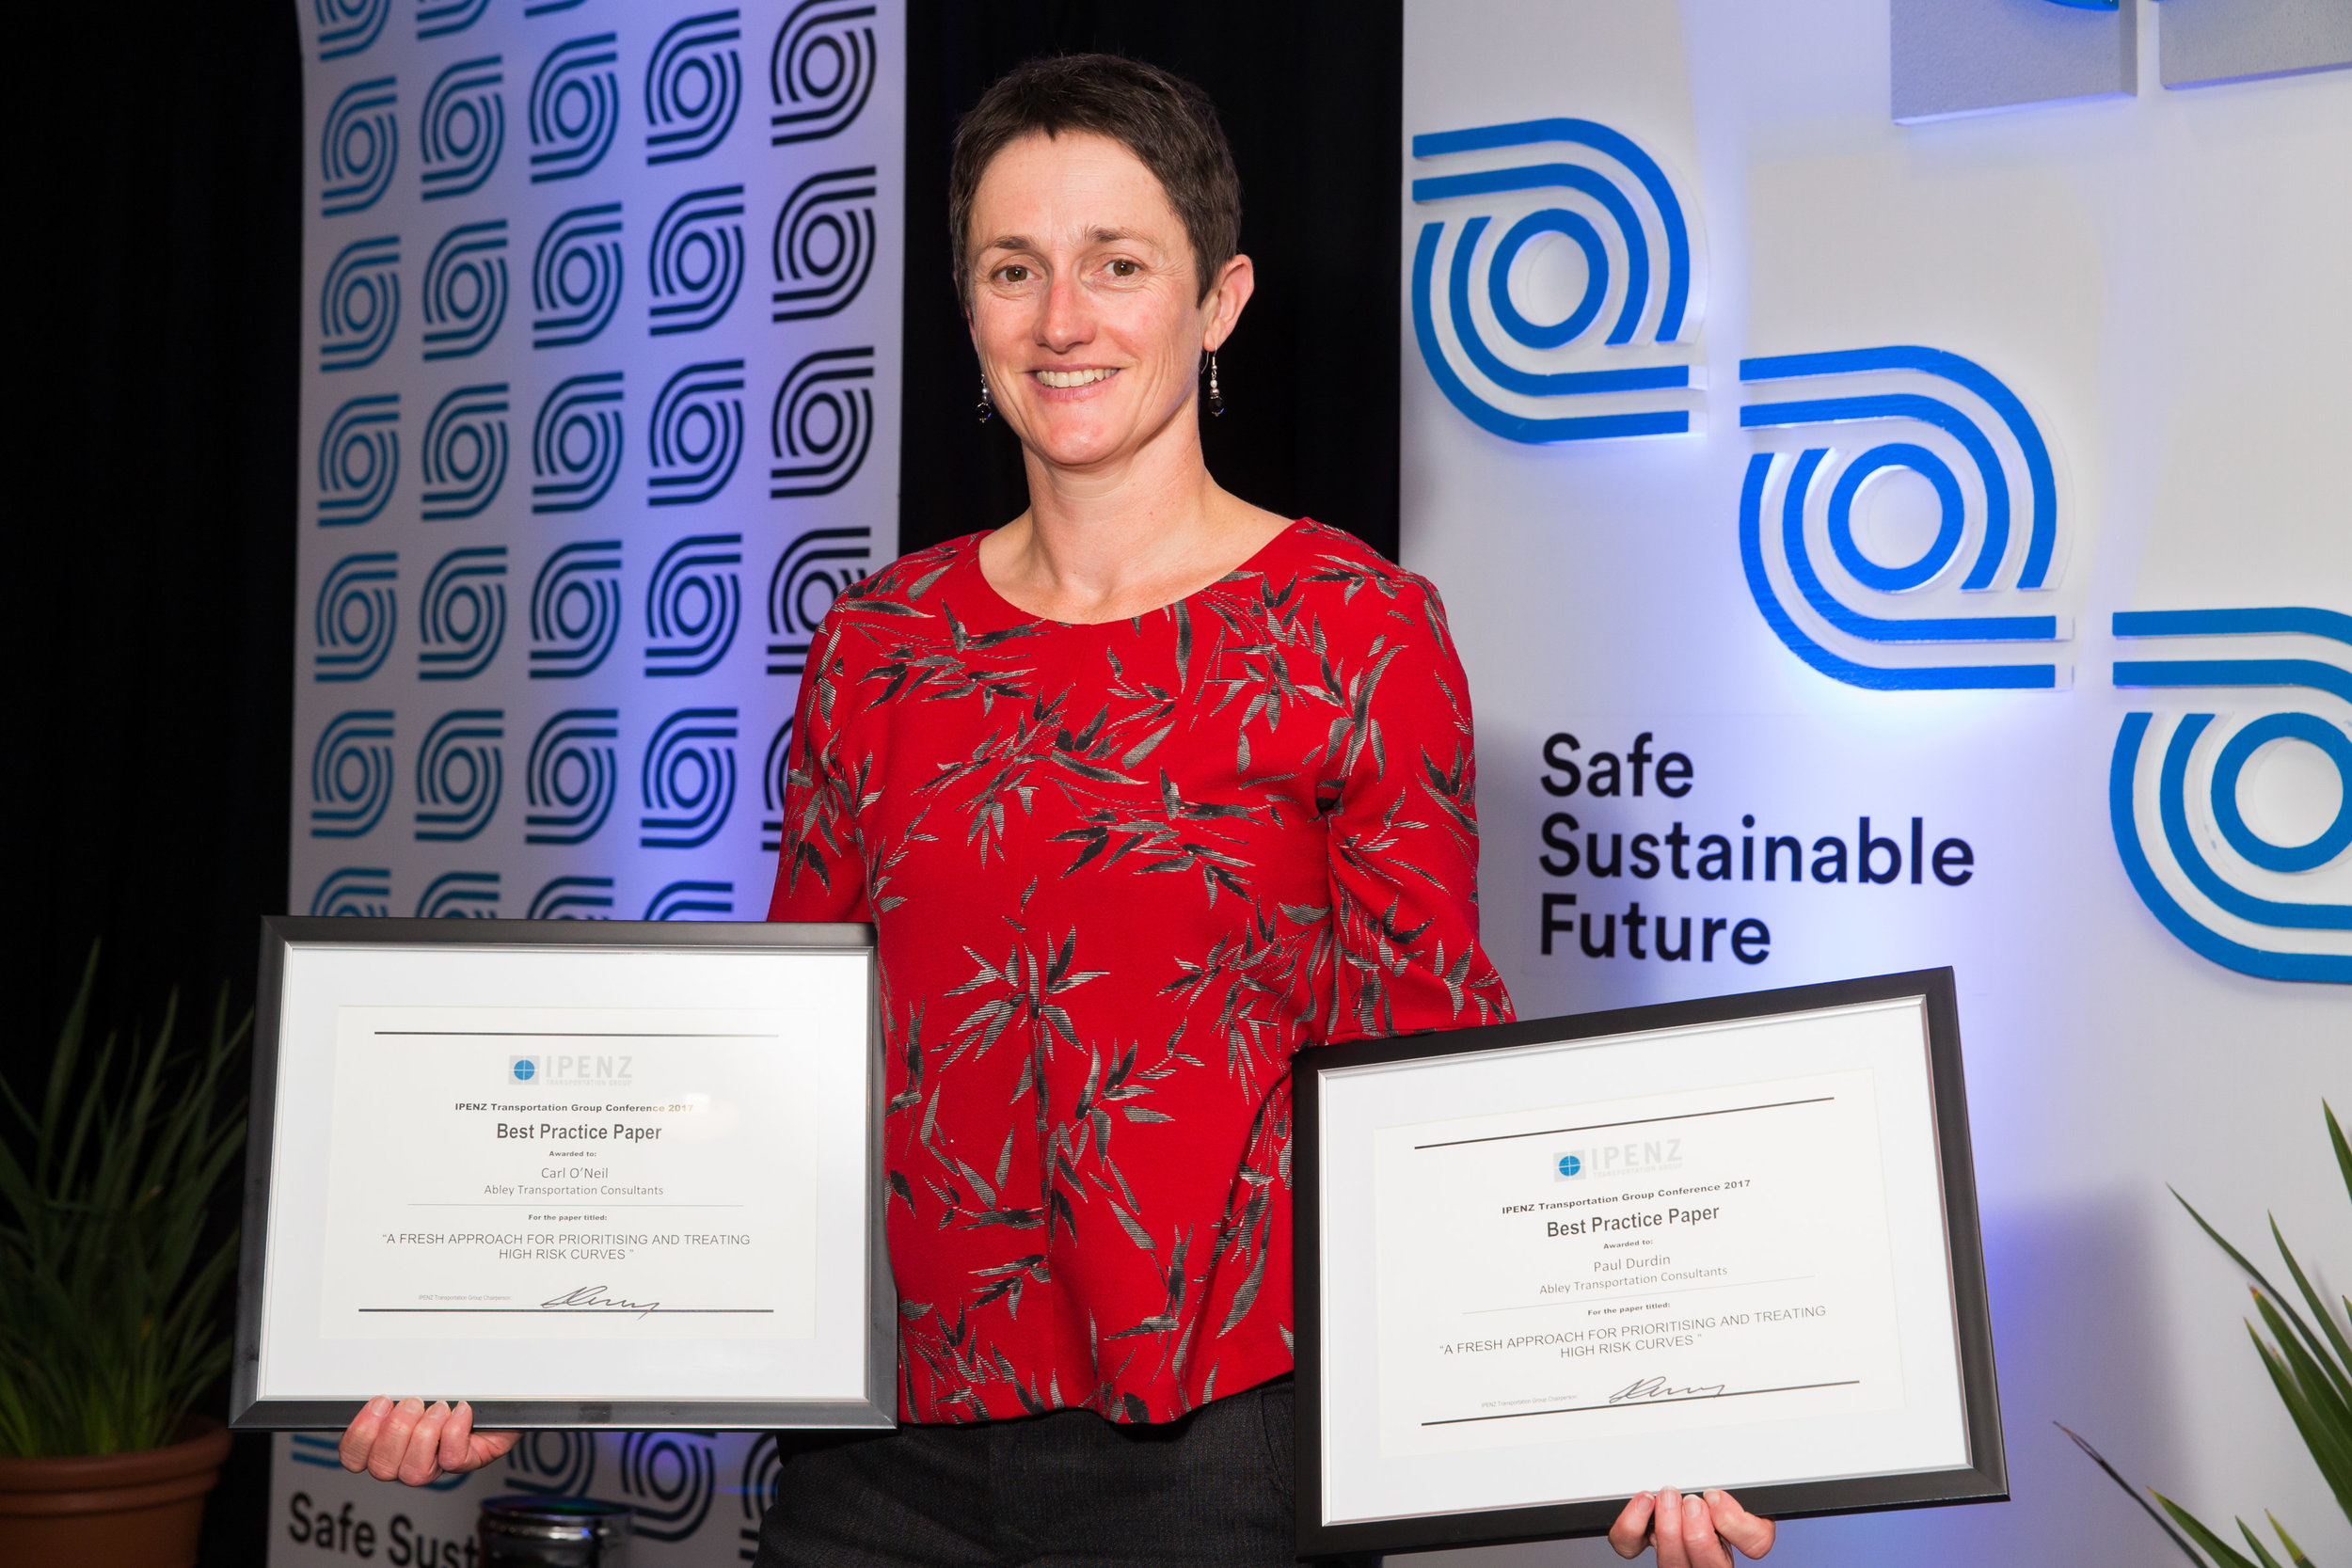 Best Practice Paper - A fresh approach for prioritising and treating high risk curves         Carl O'Neil and Paul Durdin - Abley Transportation ConsultantsRaja Abeysekera - Transport for NSW: Centre for Road Safety